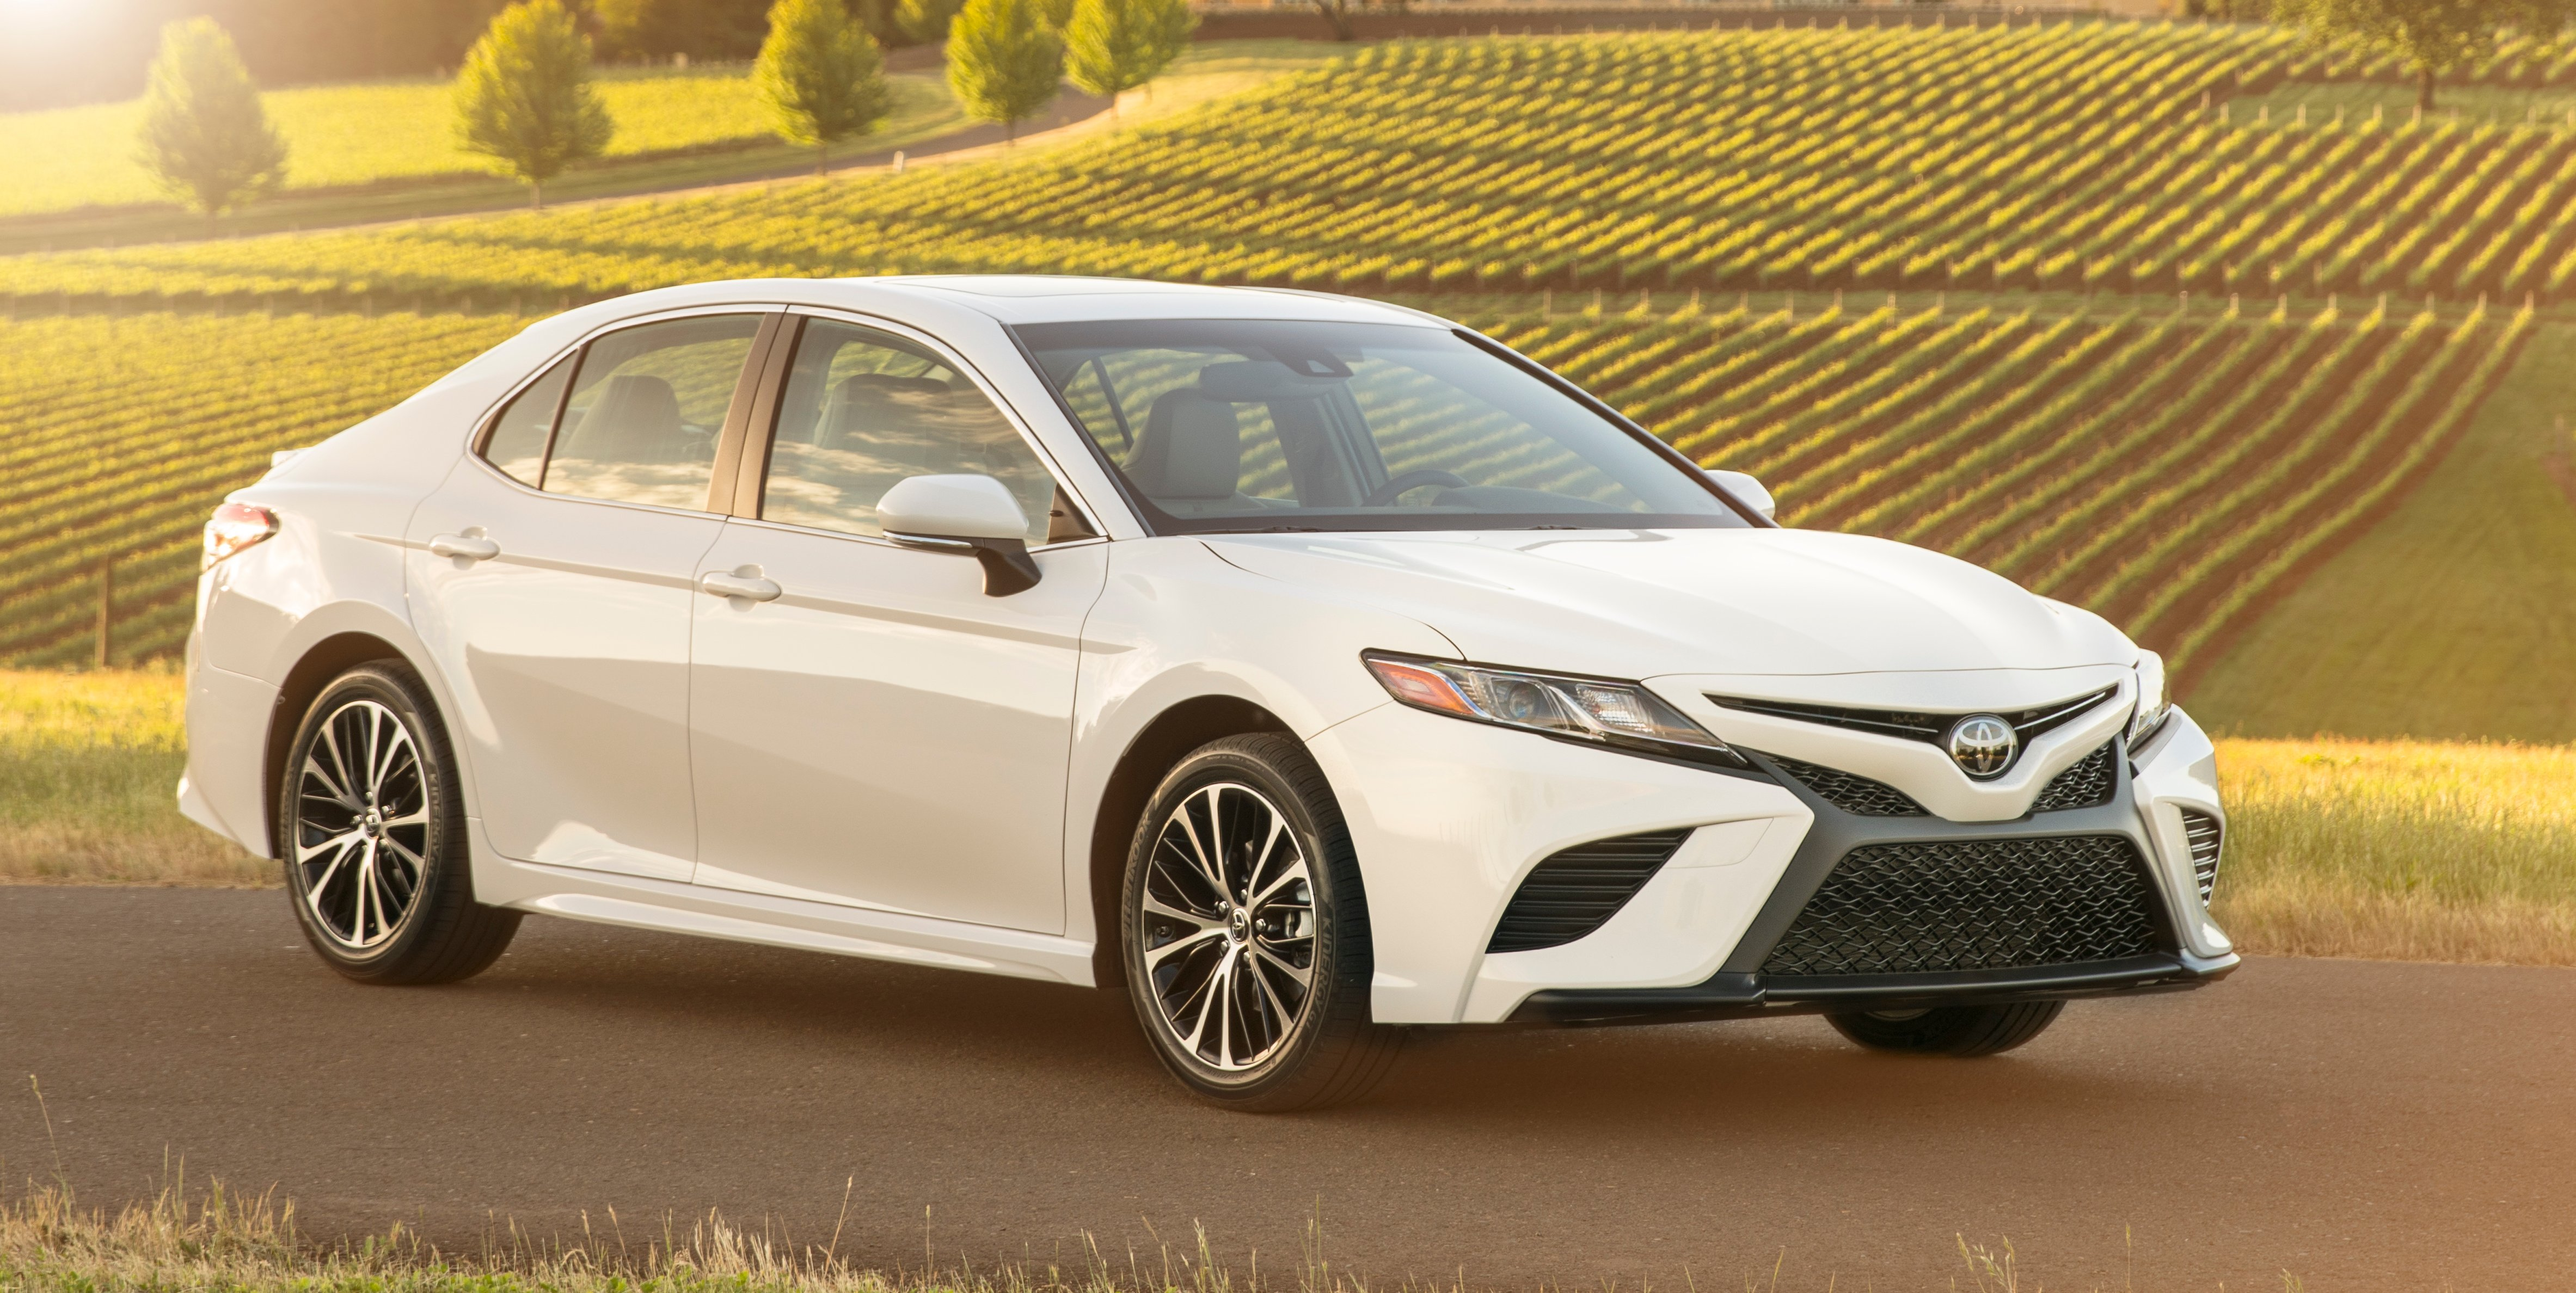 2018 Toyota Camry Hybrid review - photos | CarAdvice